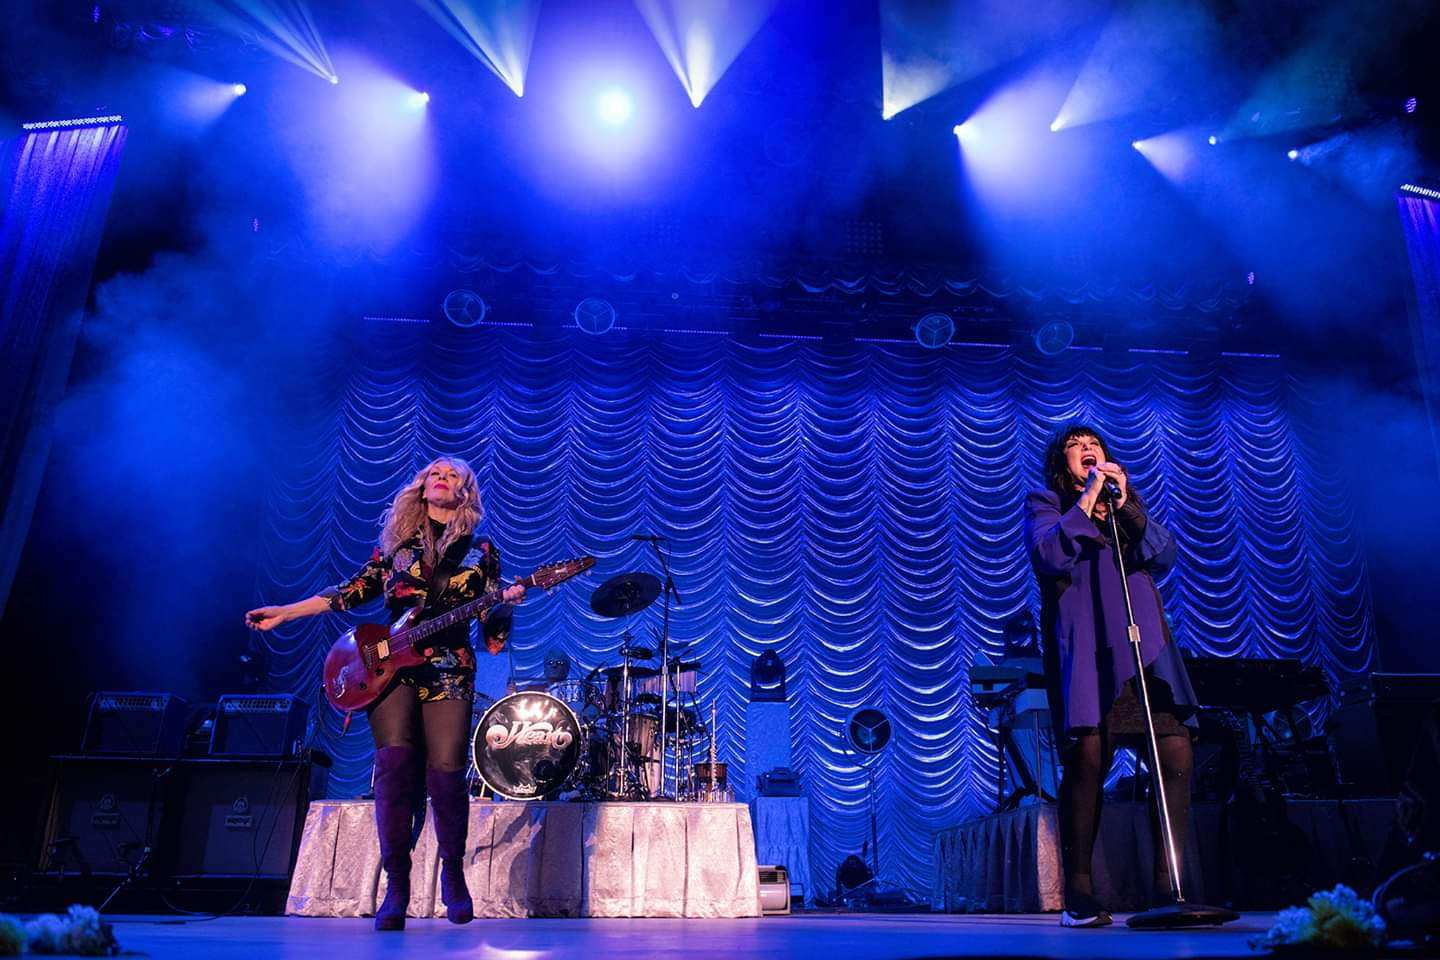 Concert review: Heart, Sheryl Crow lead femmes-first throwback at Bell Centre (Montreal Gazette)